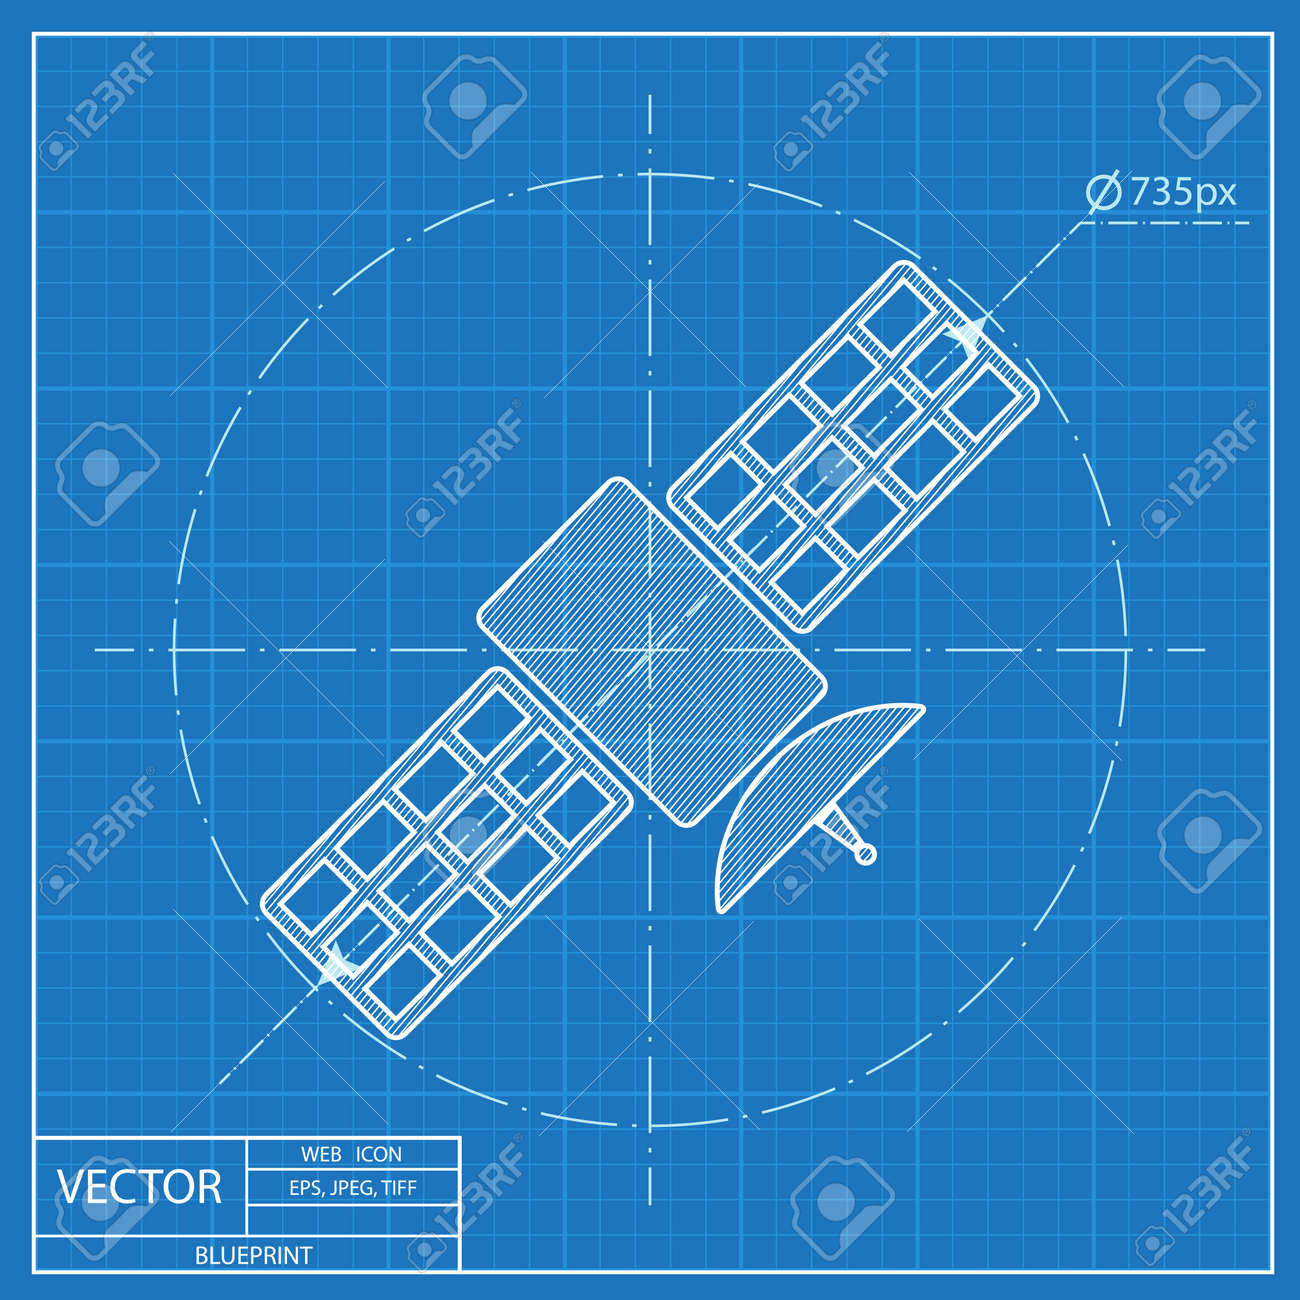 Satellite simple vector icon blueprint style royalty free cliparts satellite simple vector icon blueprint style stock vector 55573082 malvernweather Choice Image